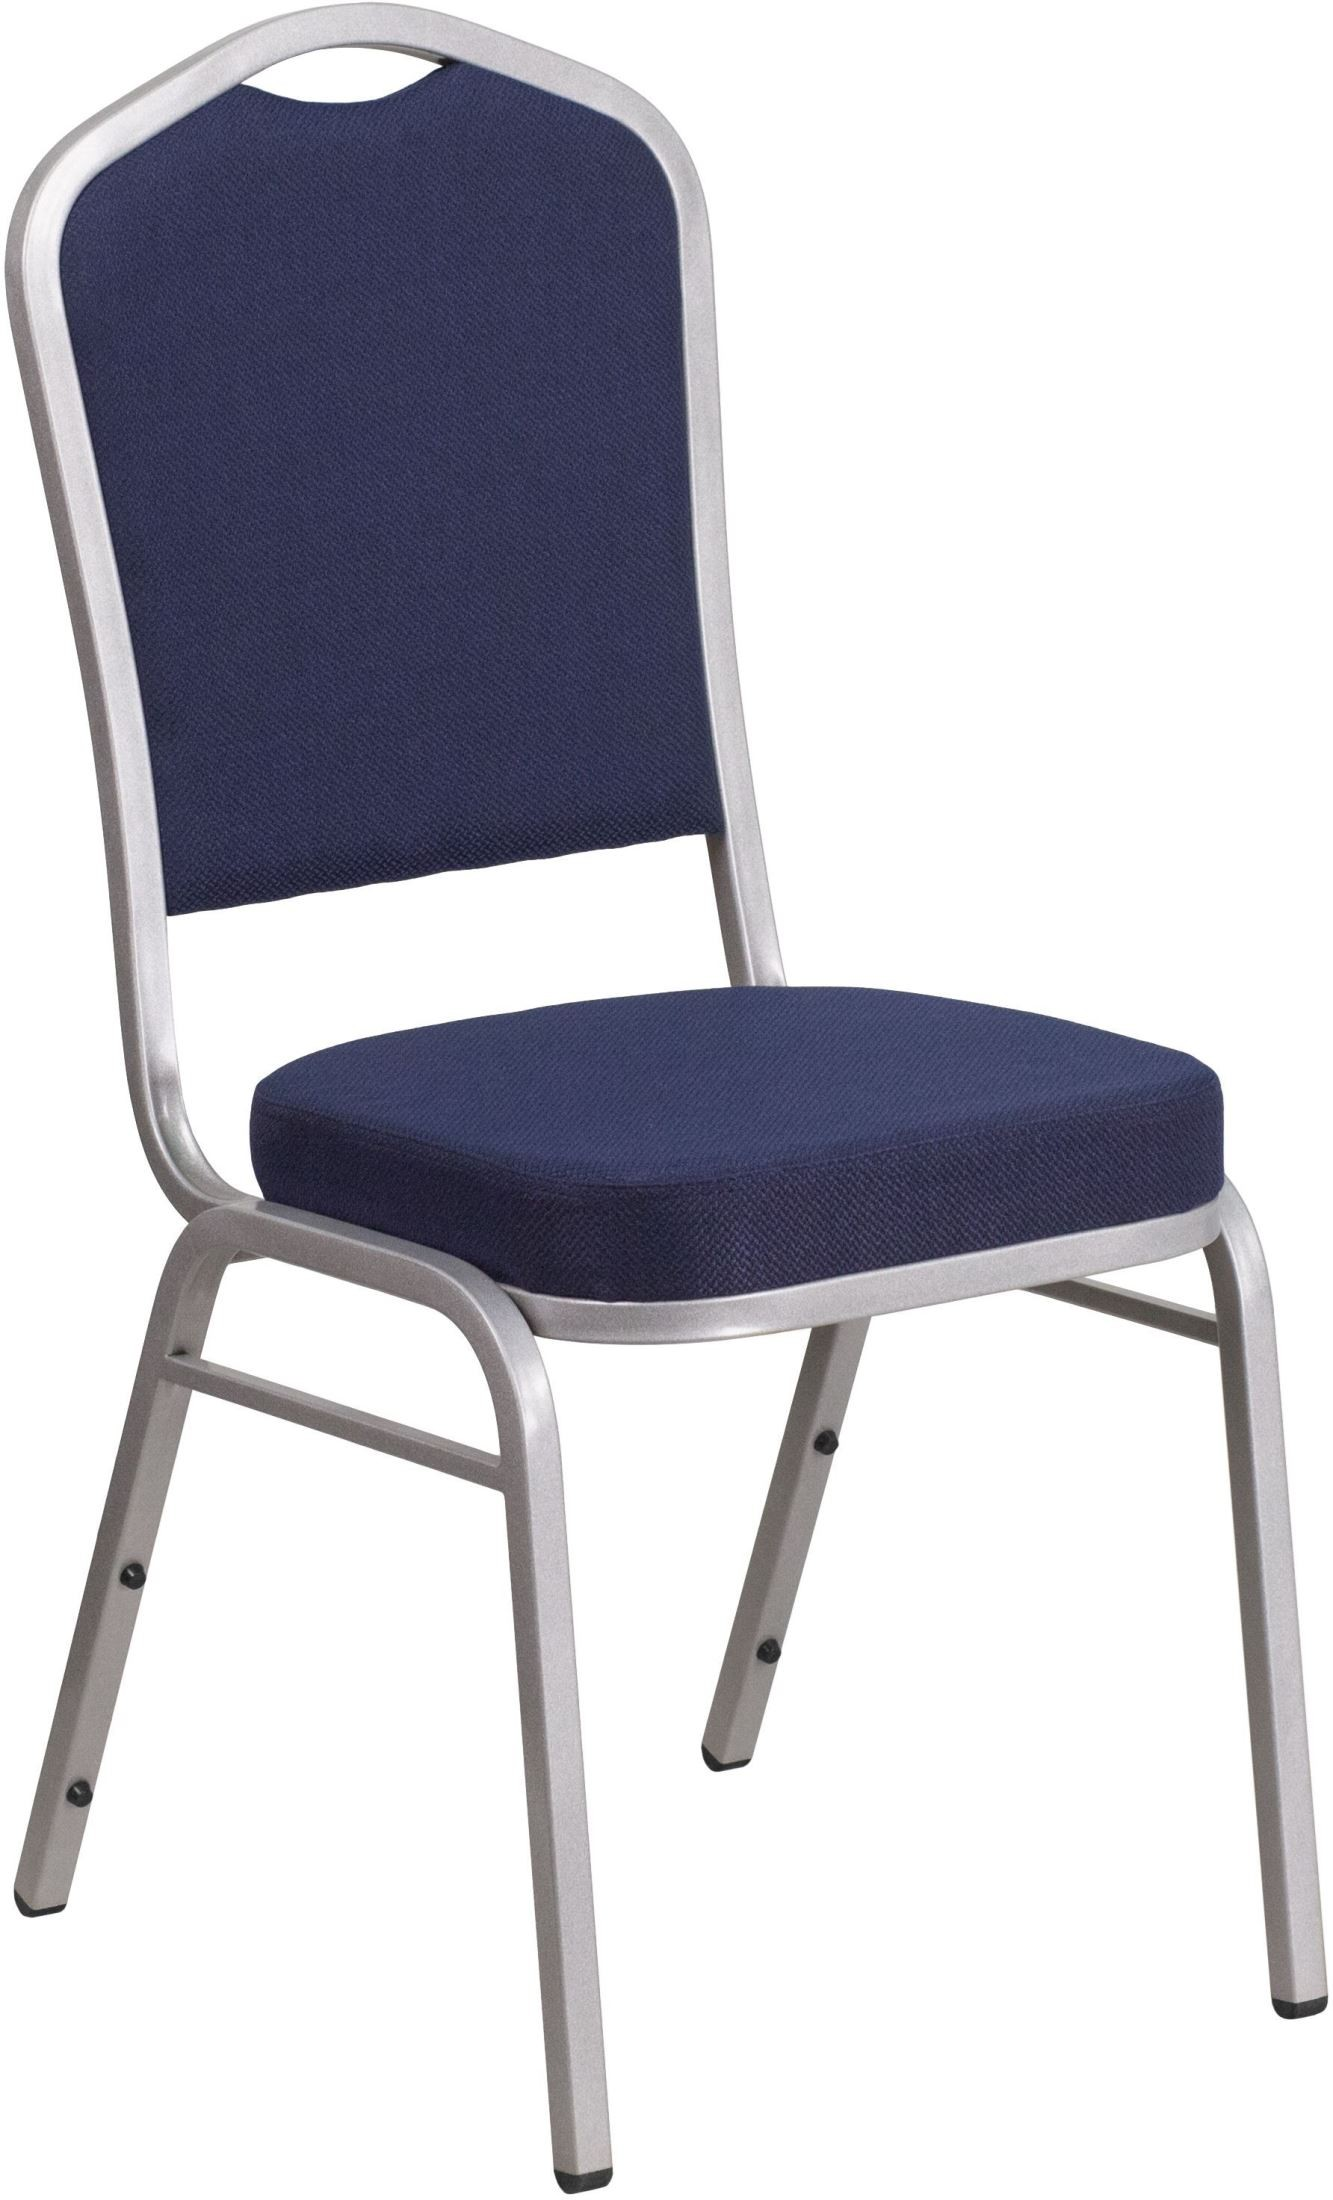 Hercules Stacking Chairs Hercules Series Crown Back Navy Fabric Stacking Banquet